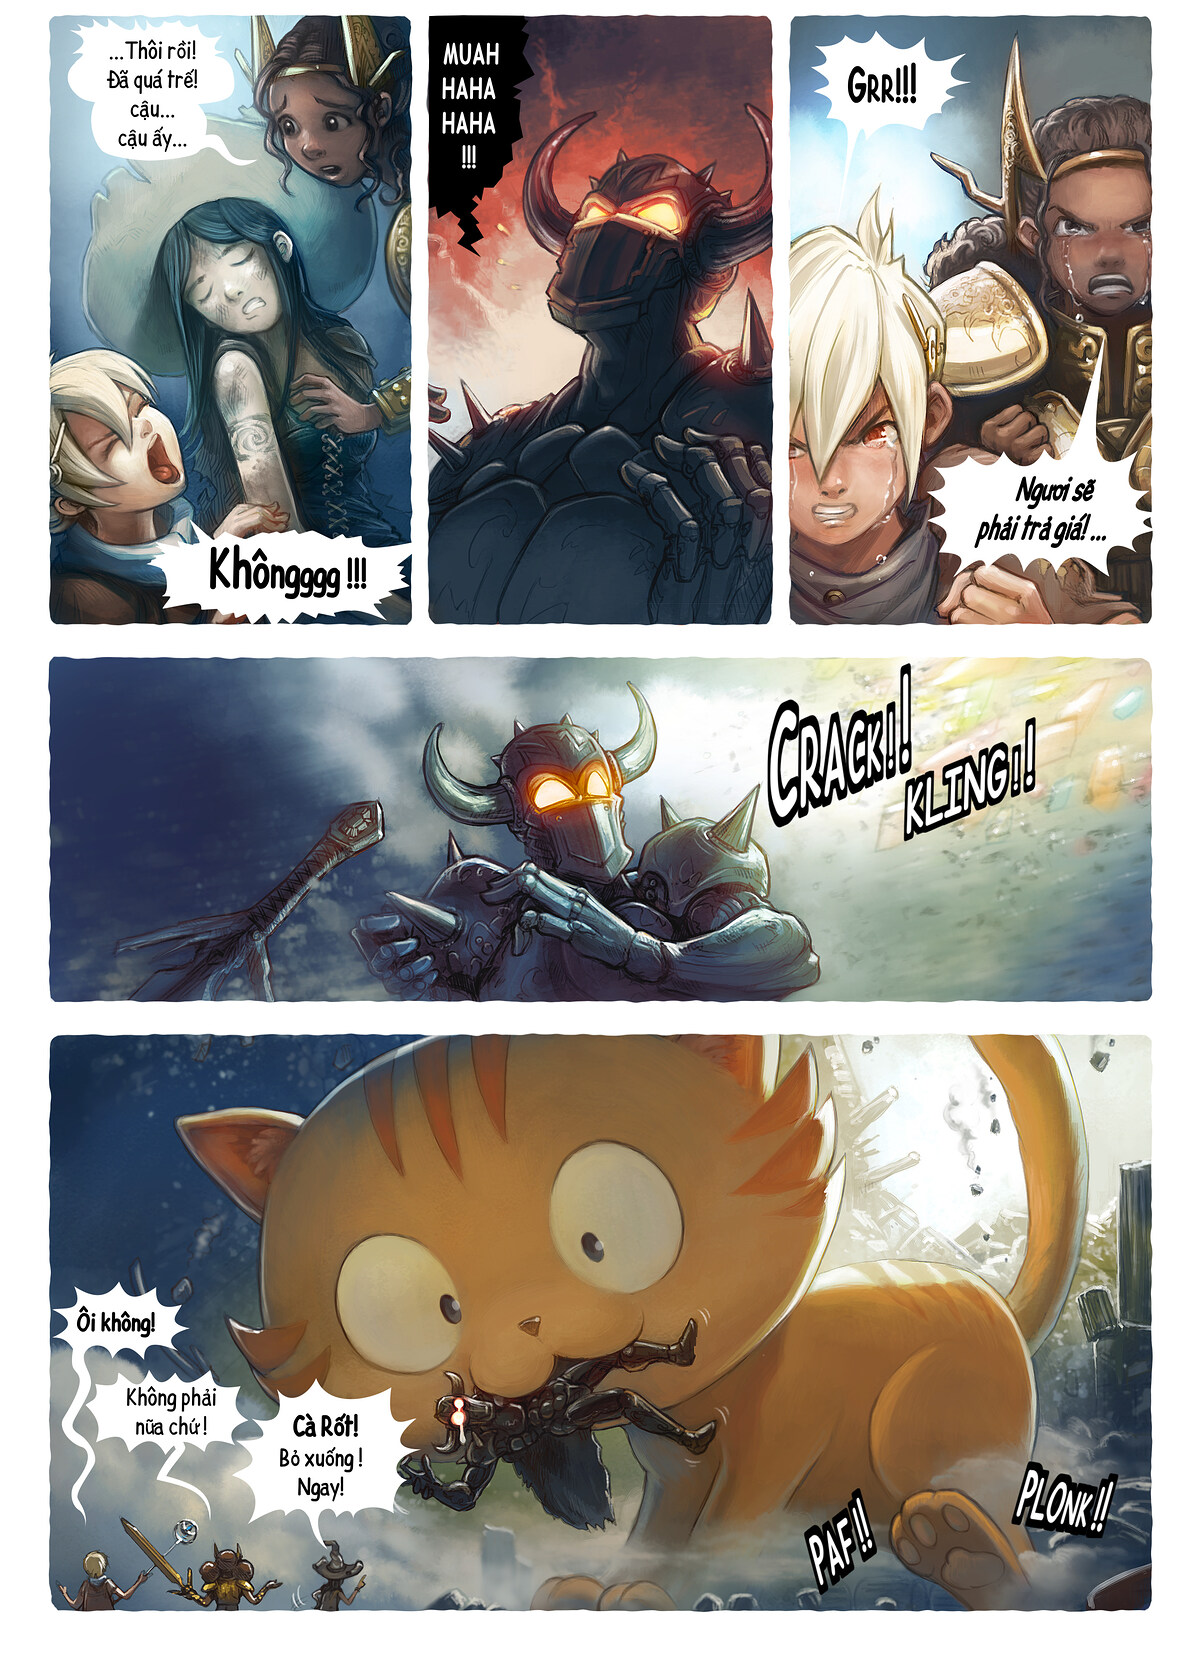 A webcomic page of Pepper&Carrot, Tập 13 [vi], trang 5